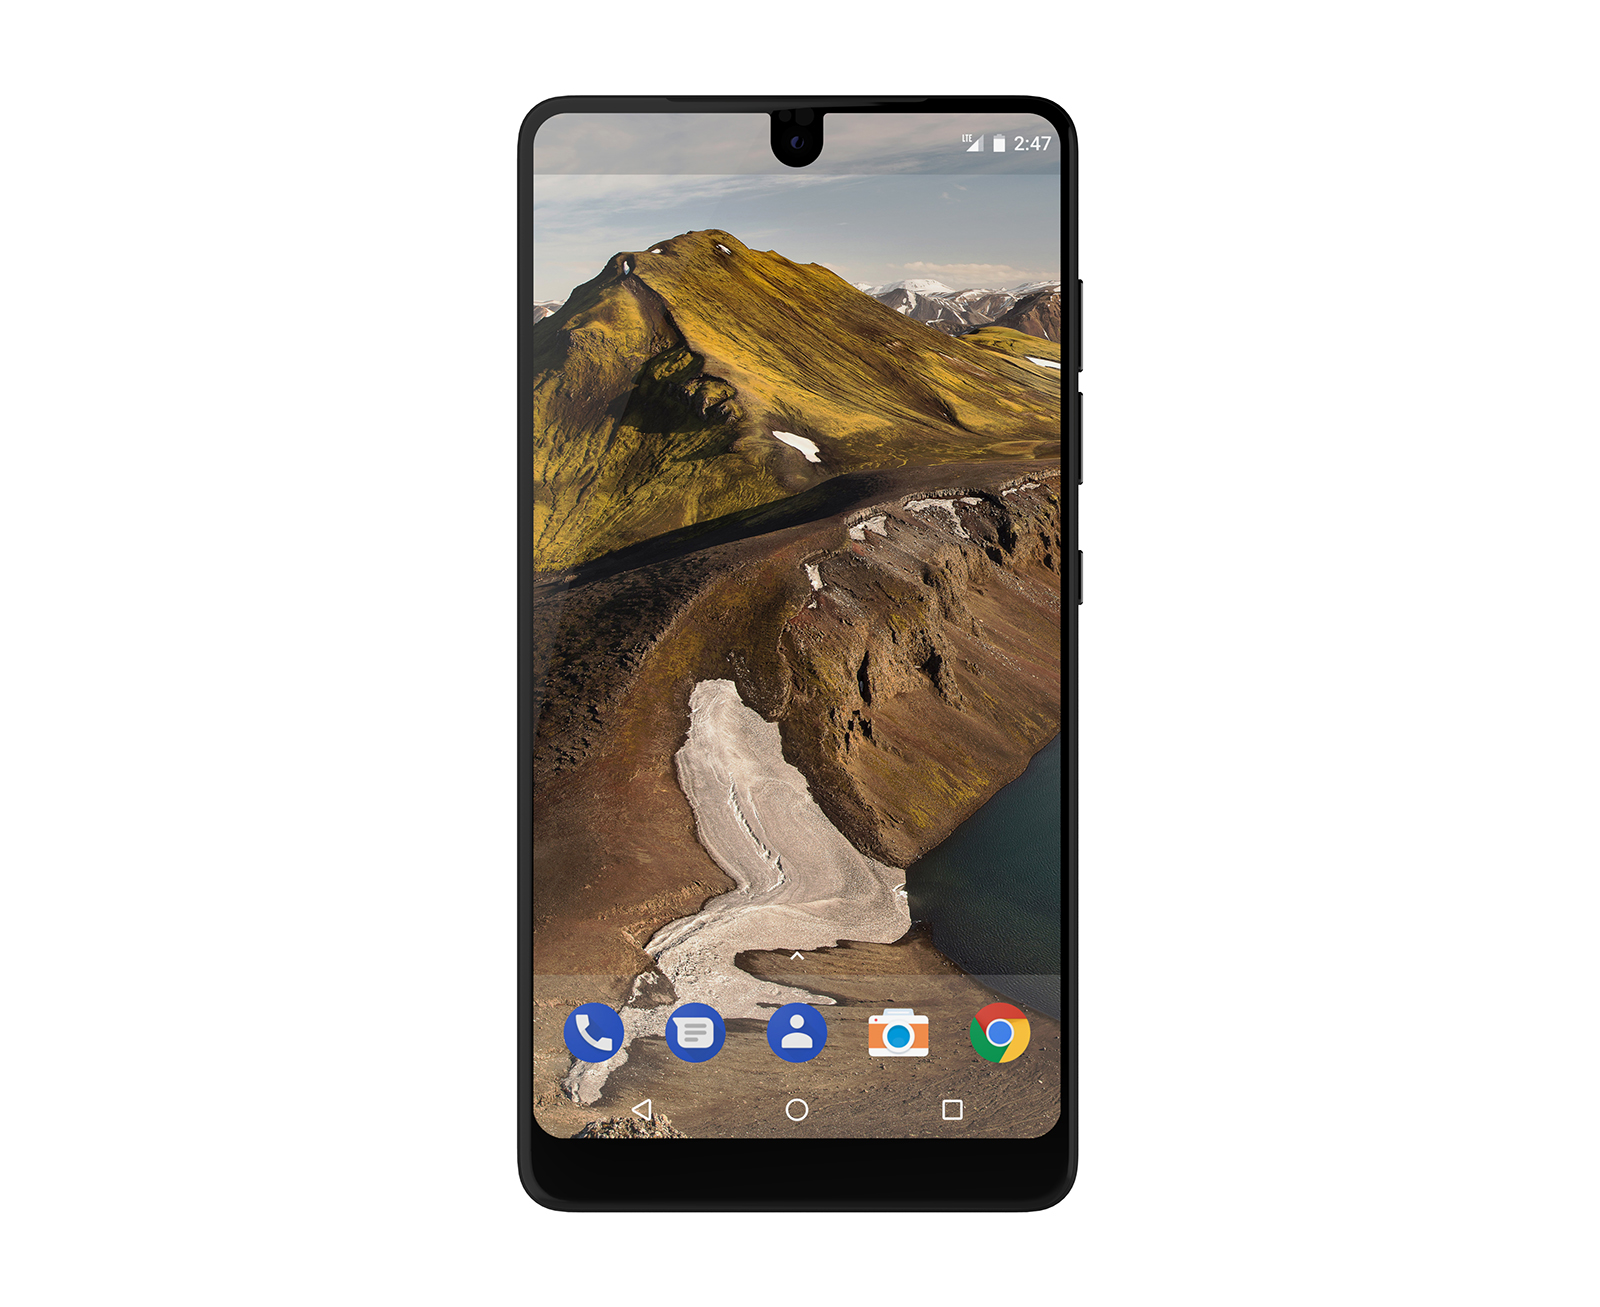 Industrial Design: Introducing the Essential Phone